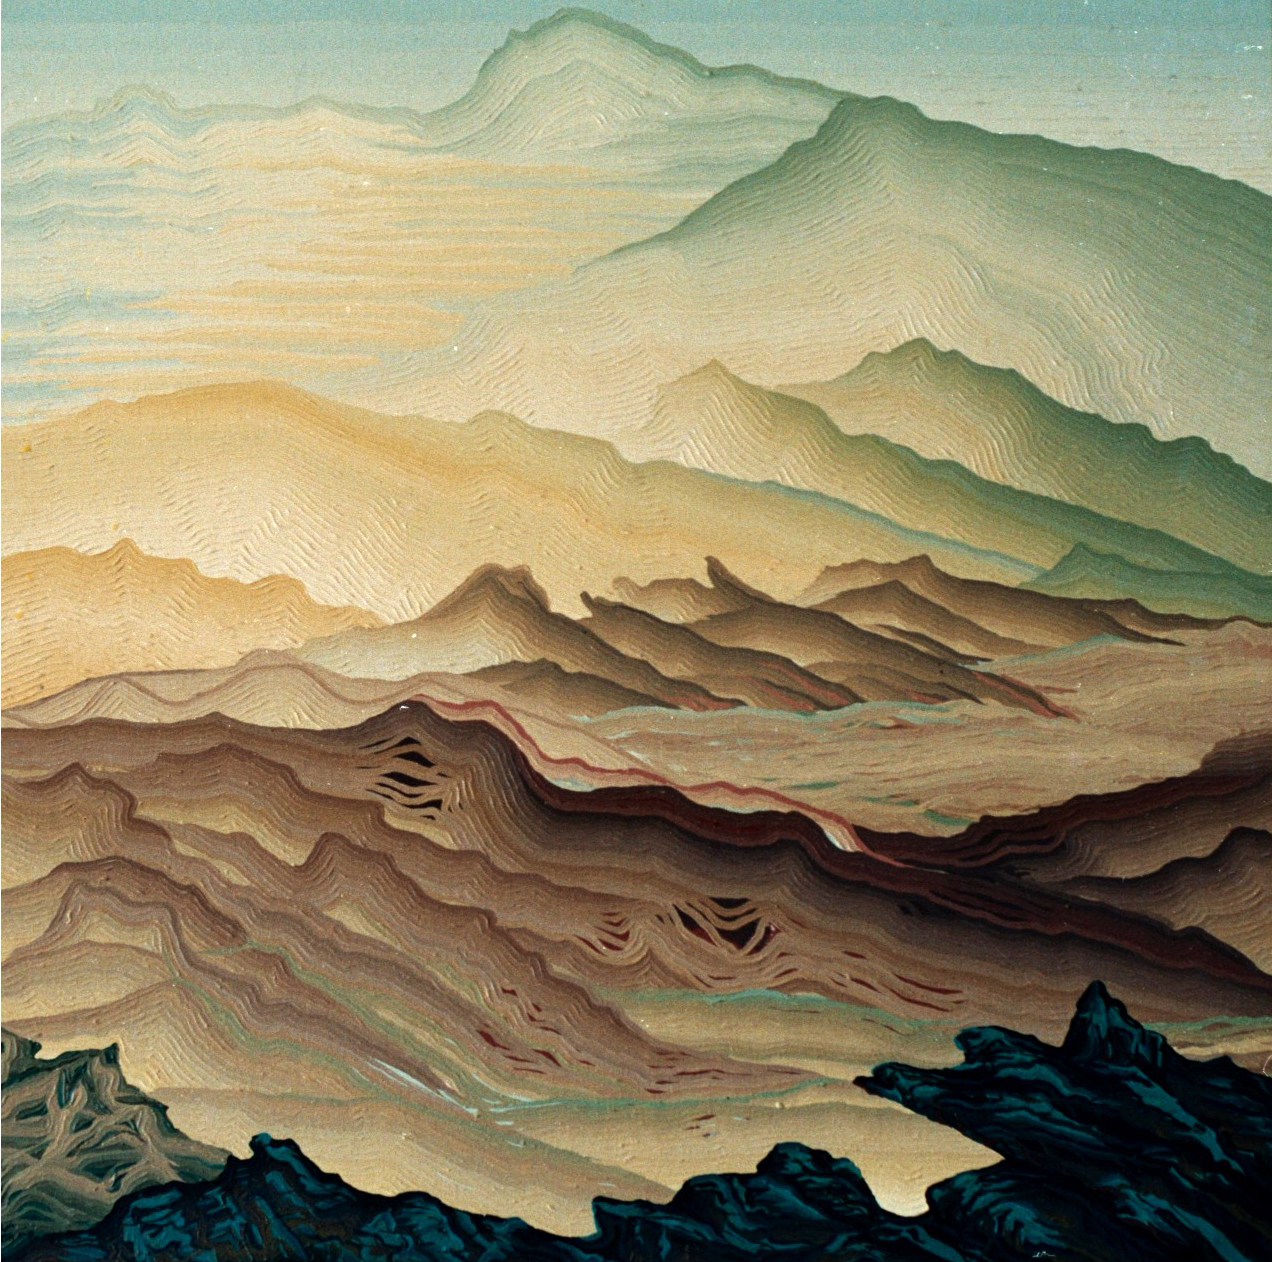 123 - Oil on canvas 90X90 cm.jpg